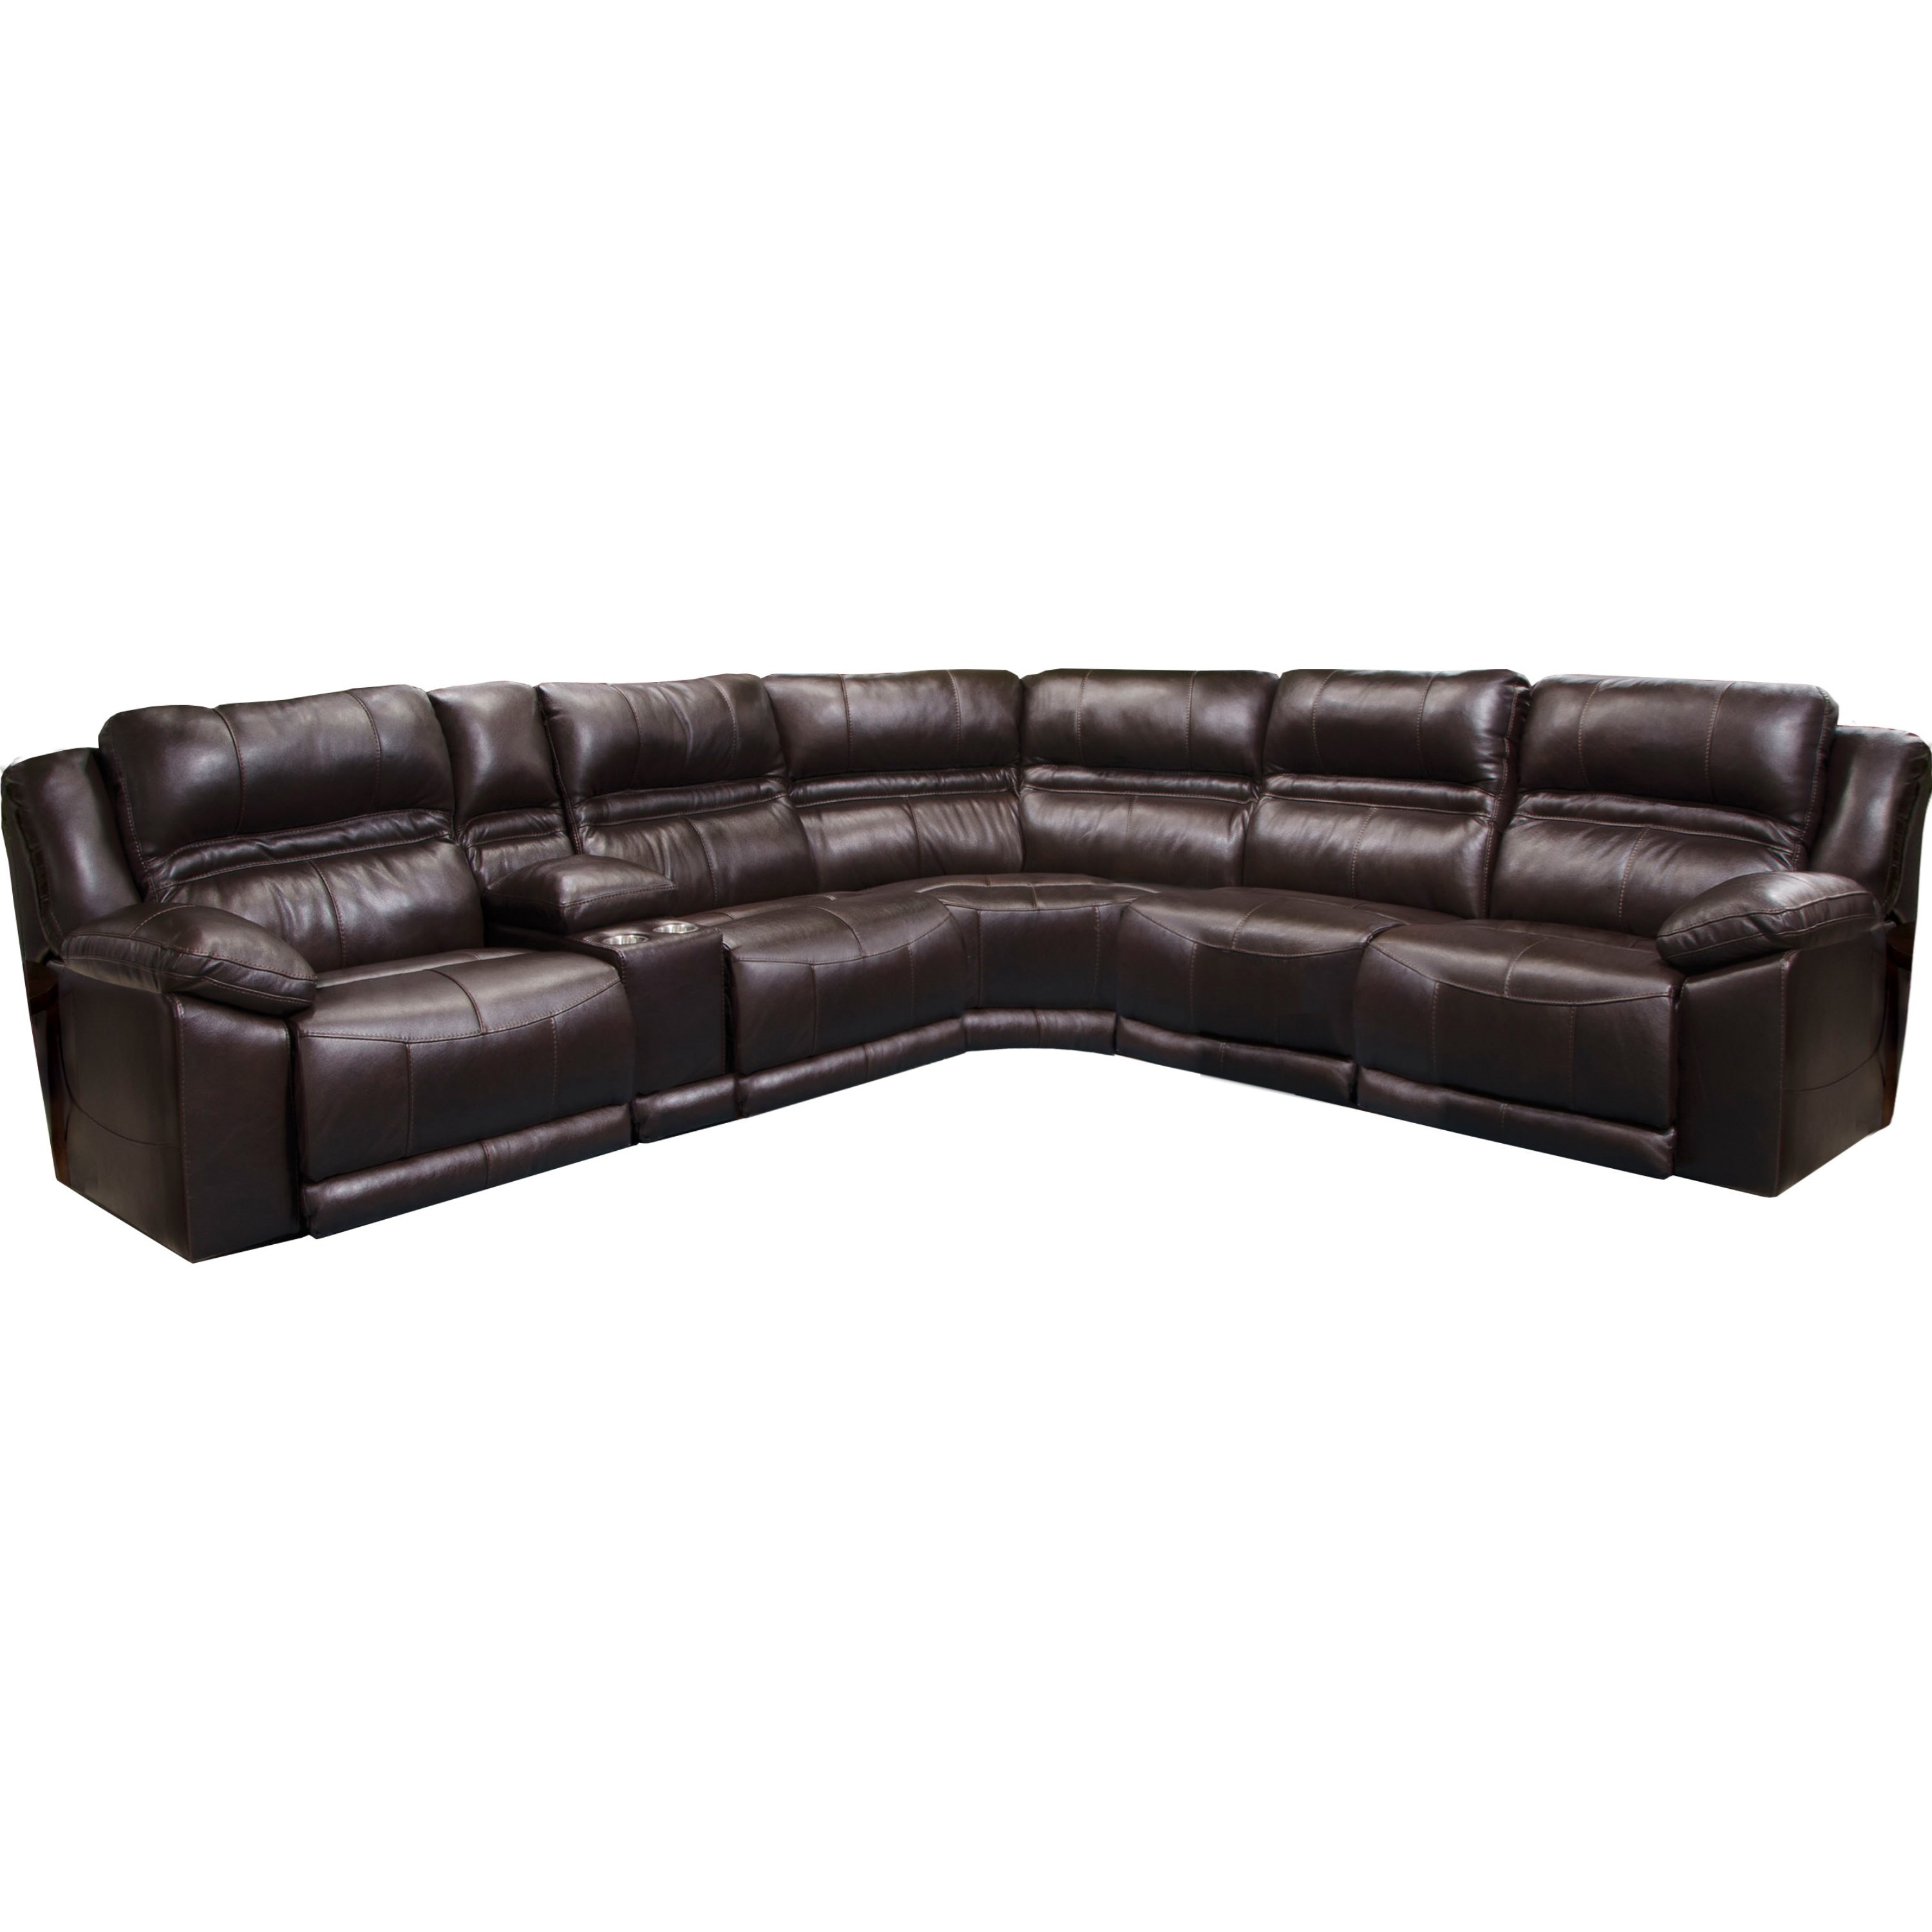 Bergamo Five Piece Power Reclining Sectional Sofa by Catnapper at Zak's Warehouse Clearance Center